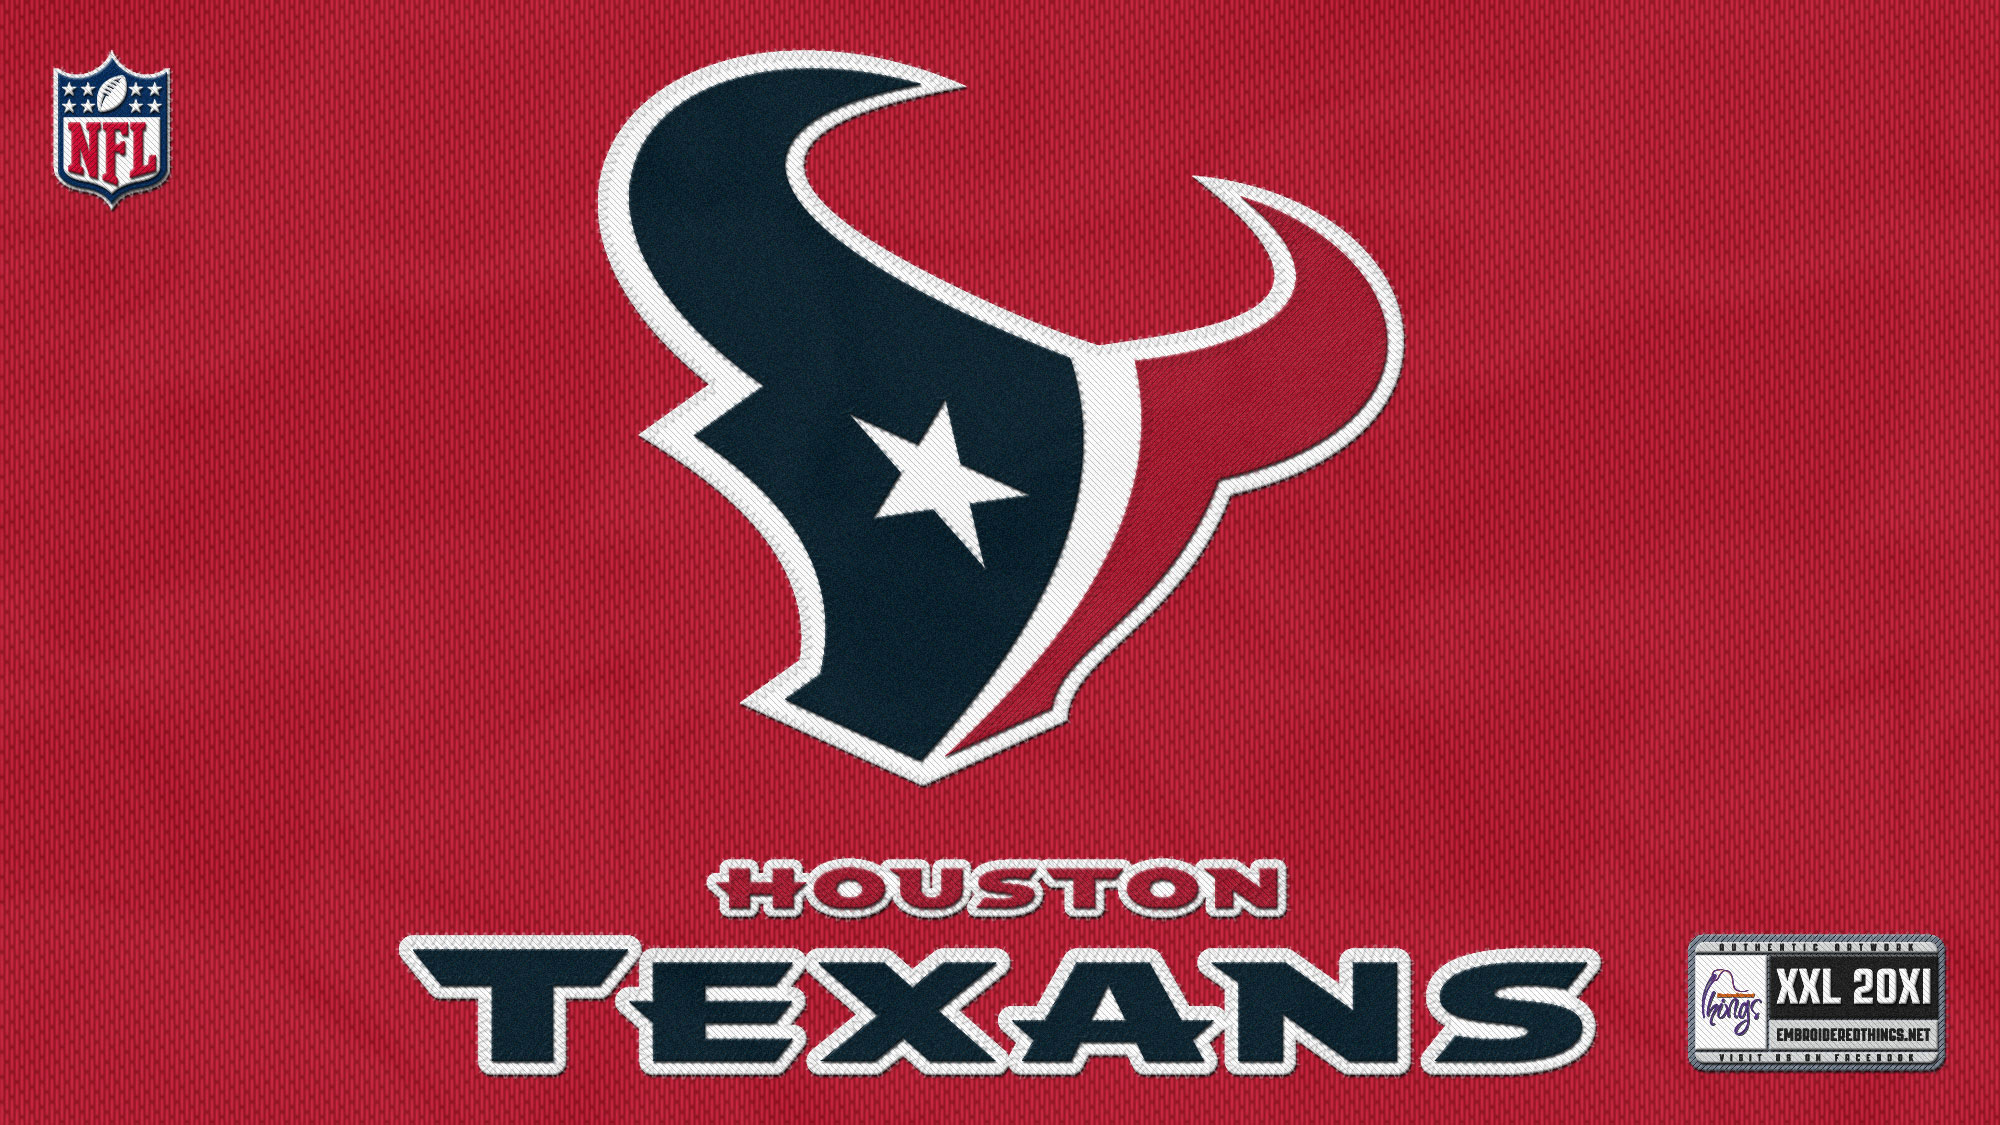 HOUSTON TEXANS nfl football d wallpaper background 2000x1125